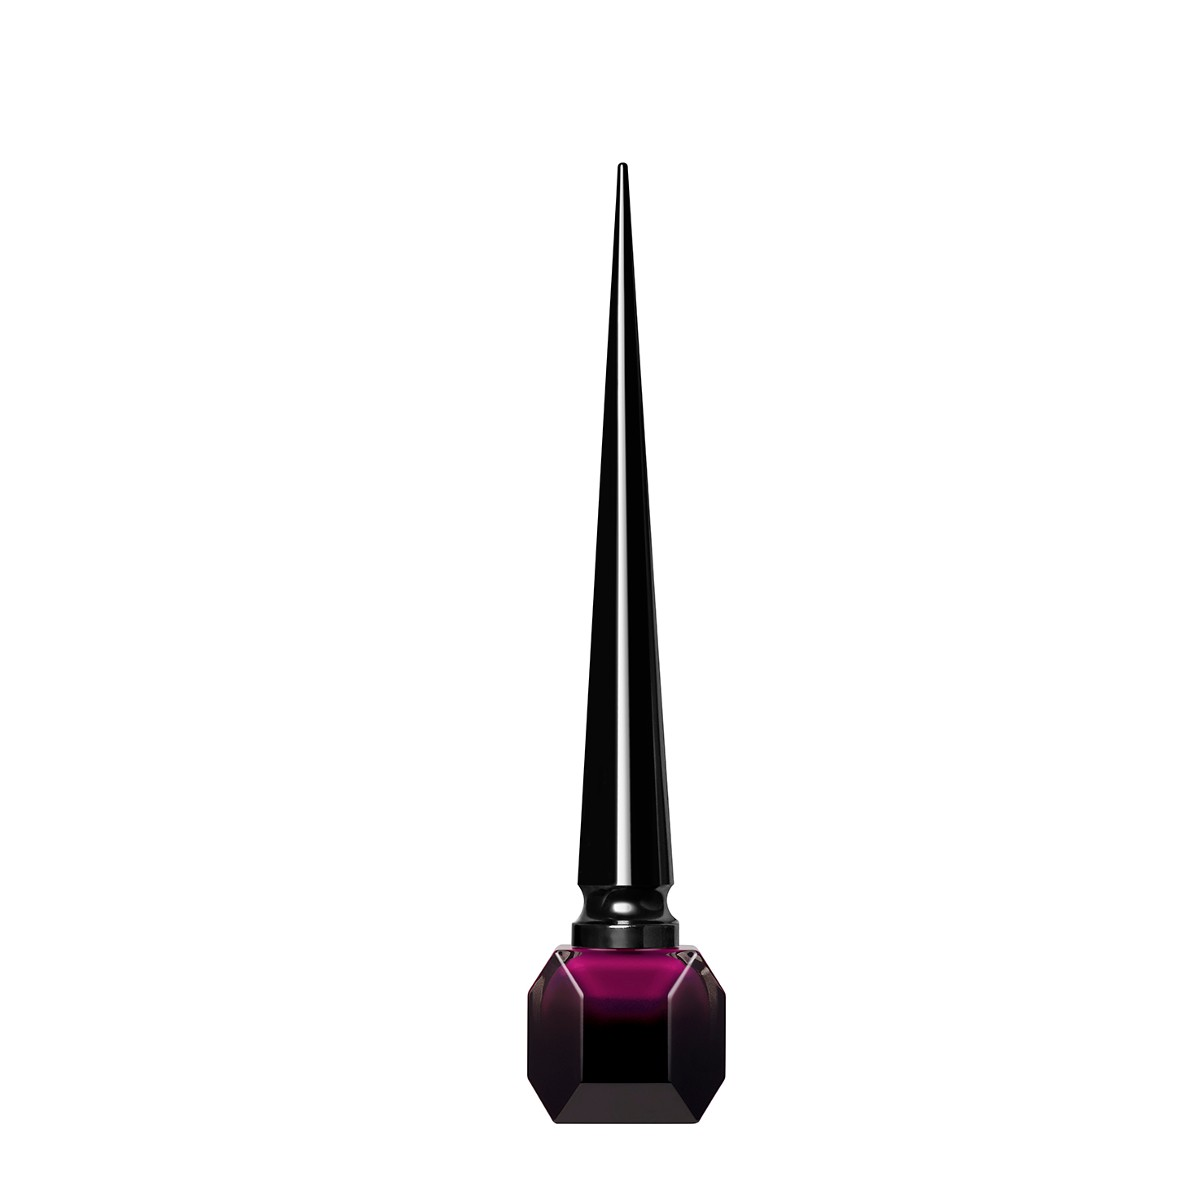 Beauty - Delicotte - Christian Louboutin